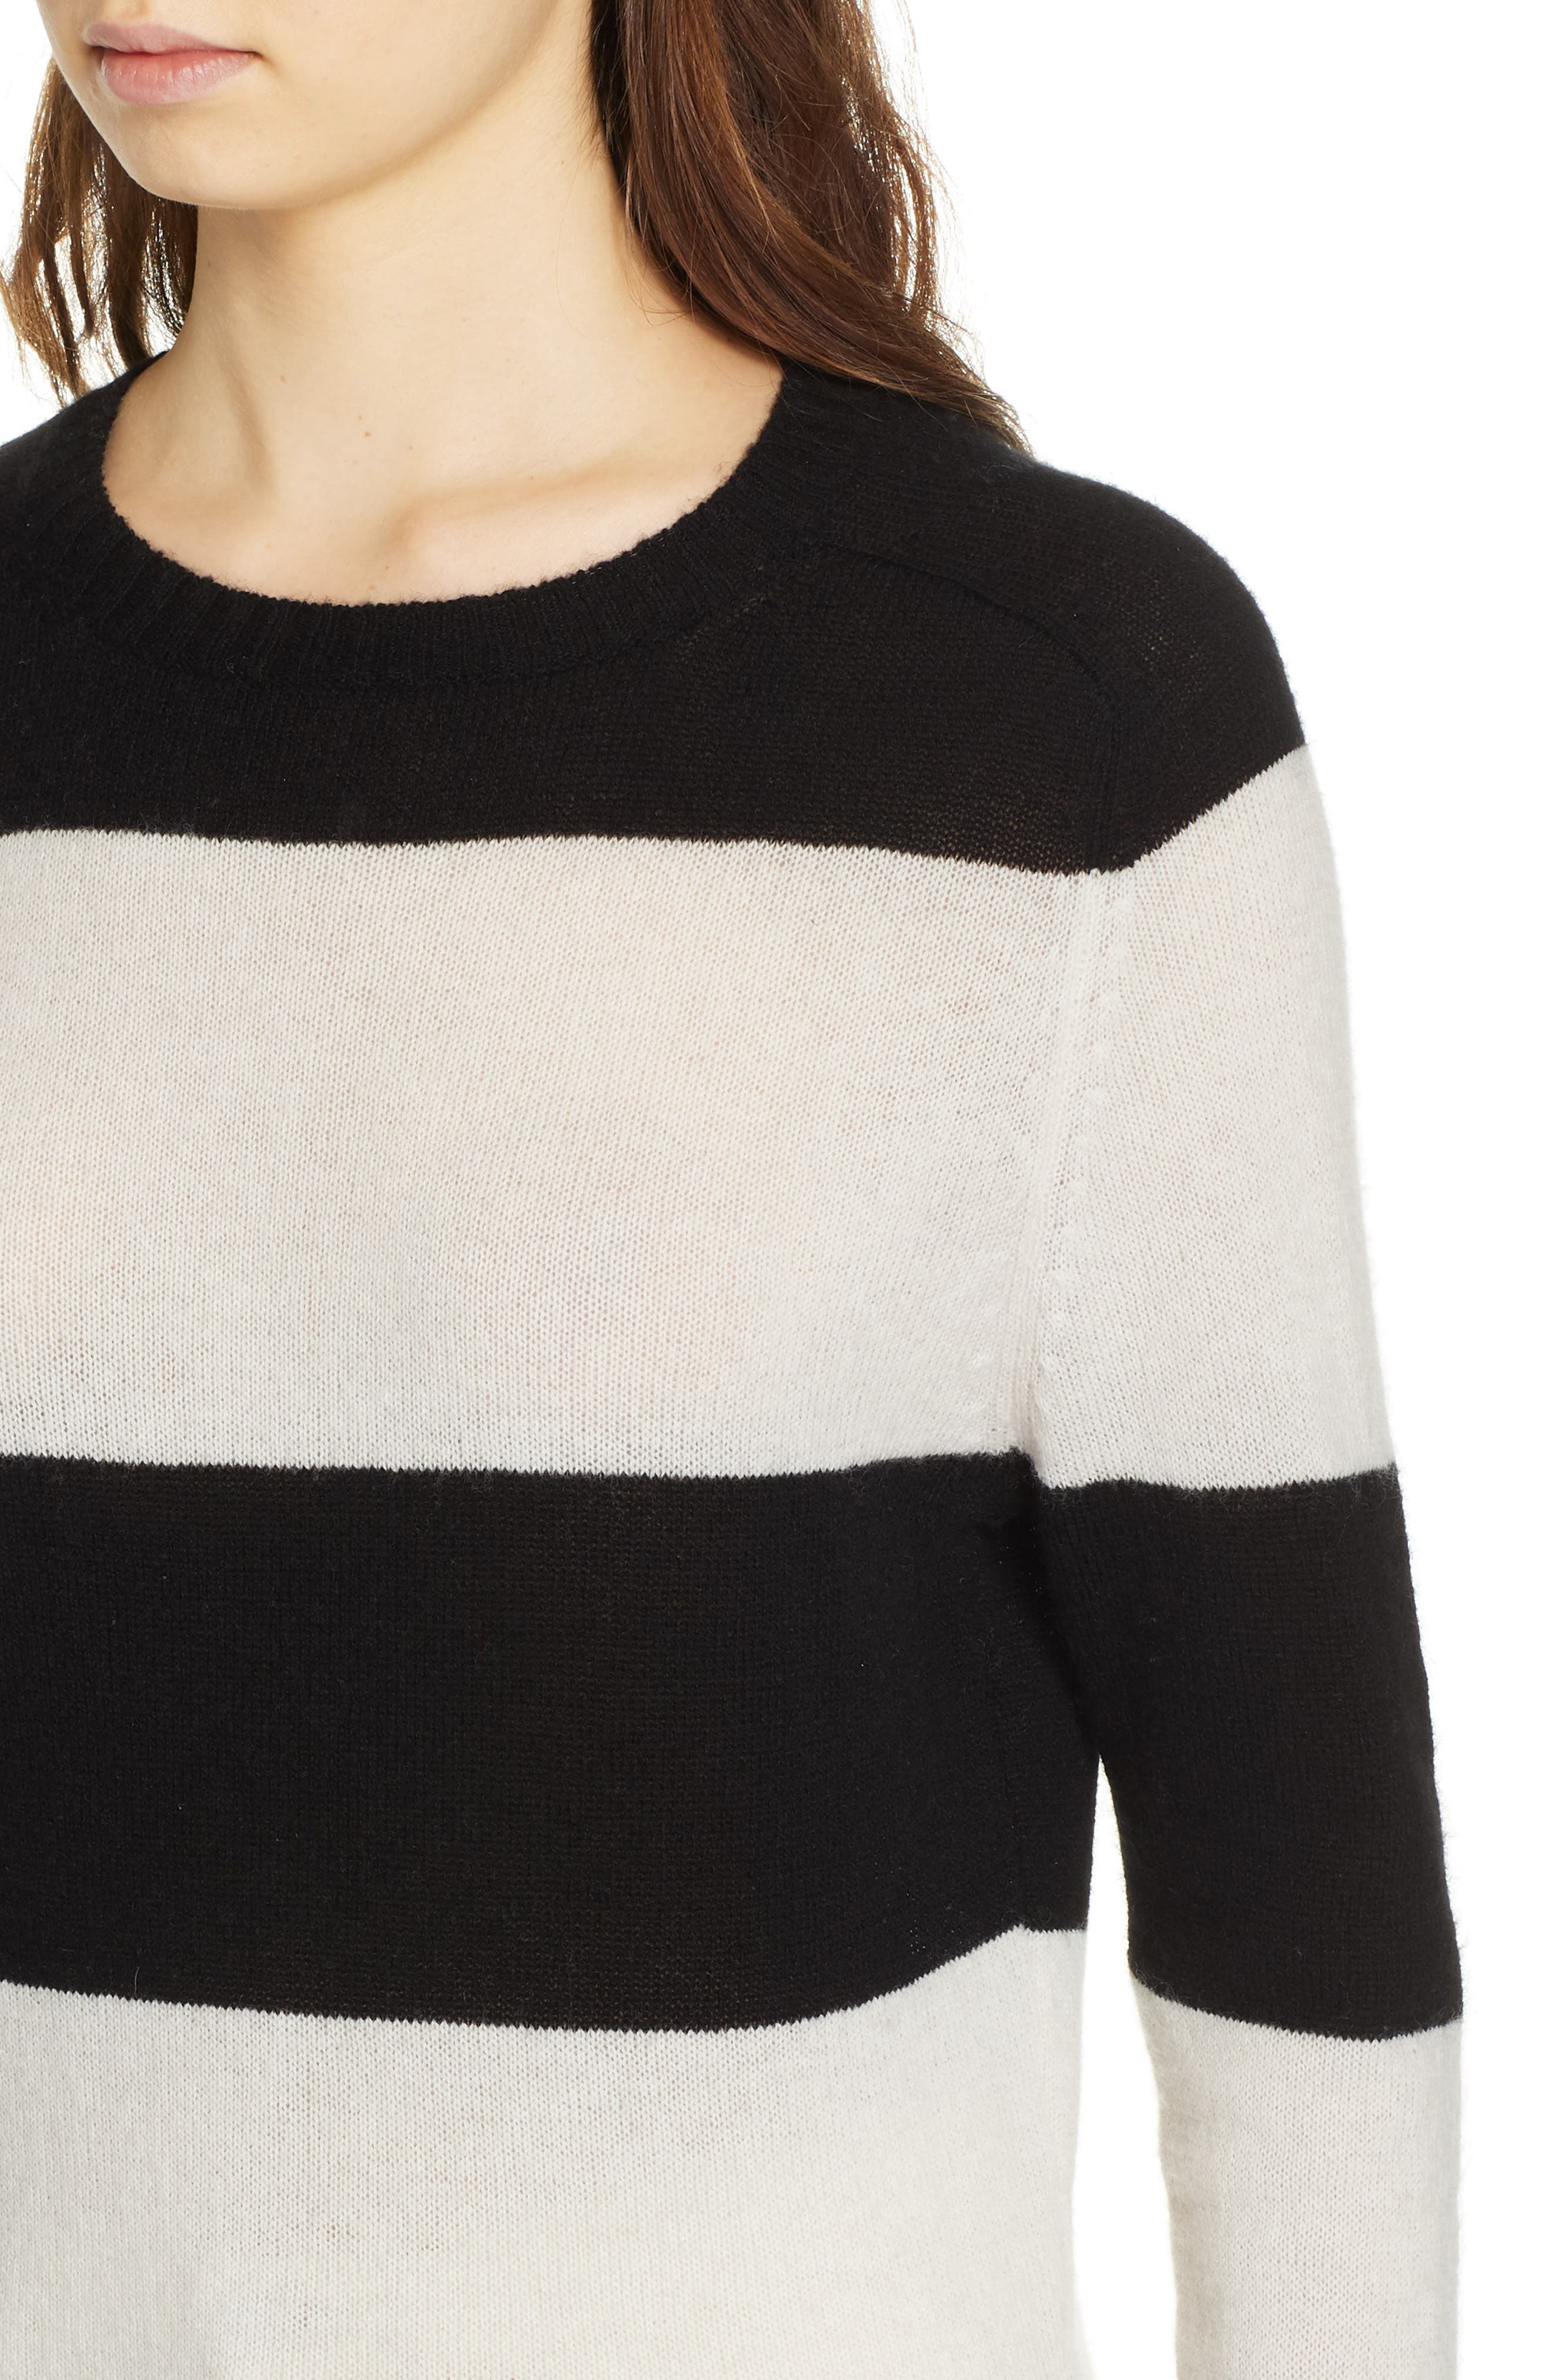 RE/DONE, Stripe Wool & Cashmere Sweater, Alternate thumbnail 4, color, BLACK/ IVORY